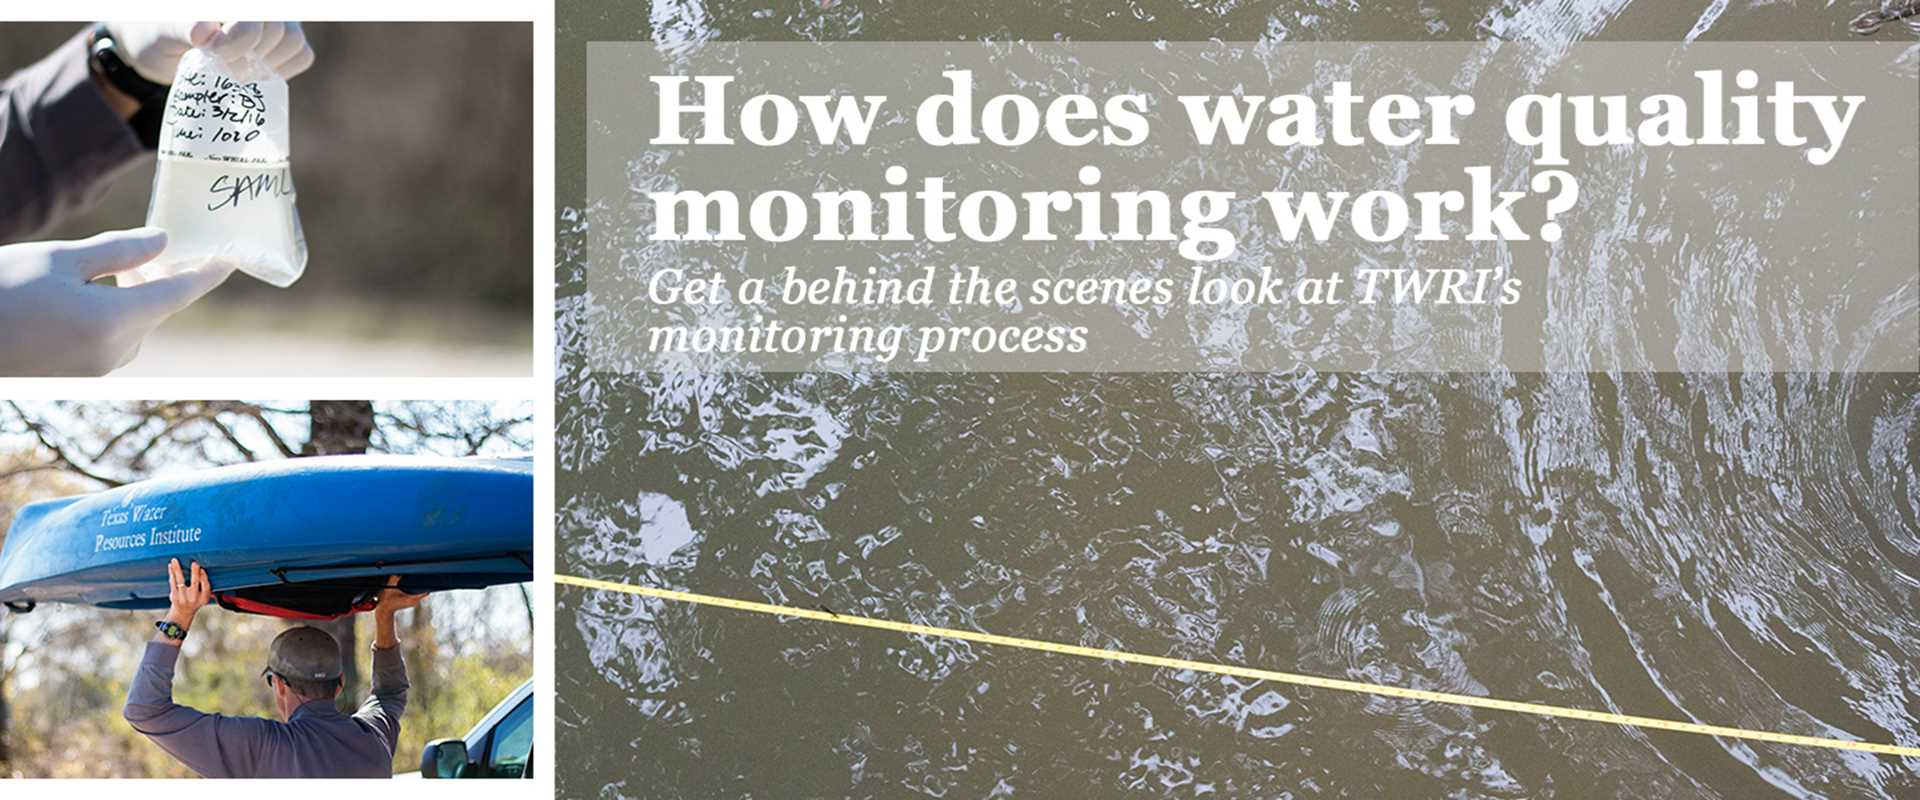 How does water quality monitoring work?